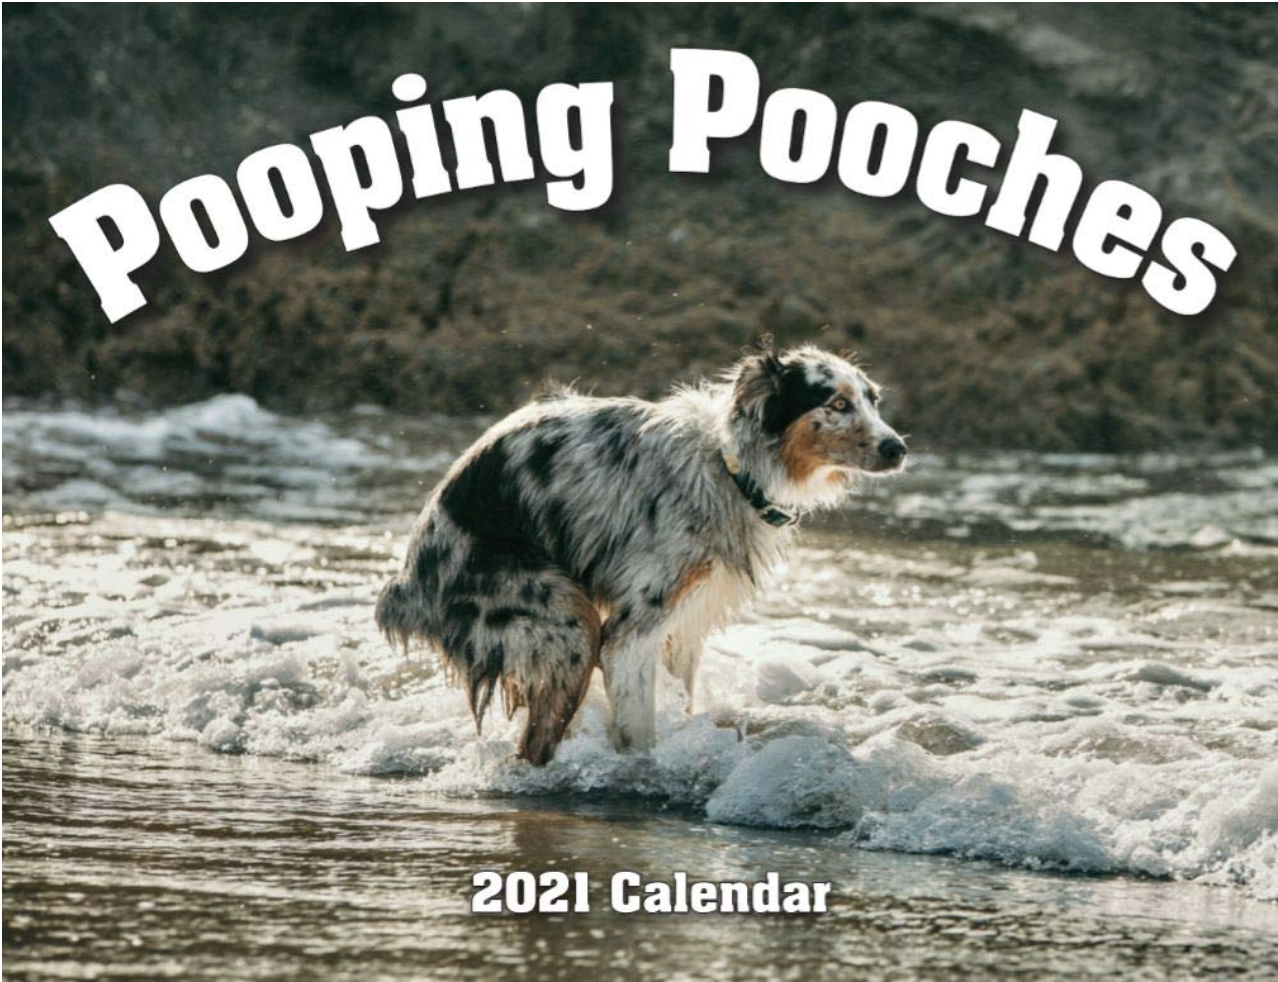 A calendar with a photo of a dog pooping on the front